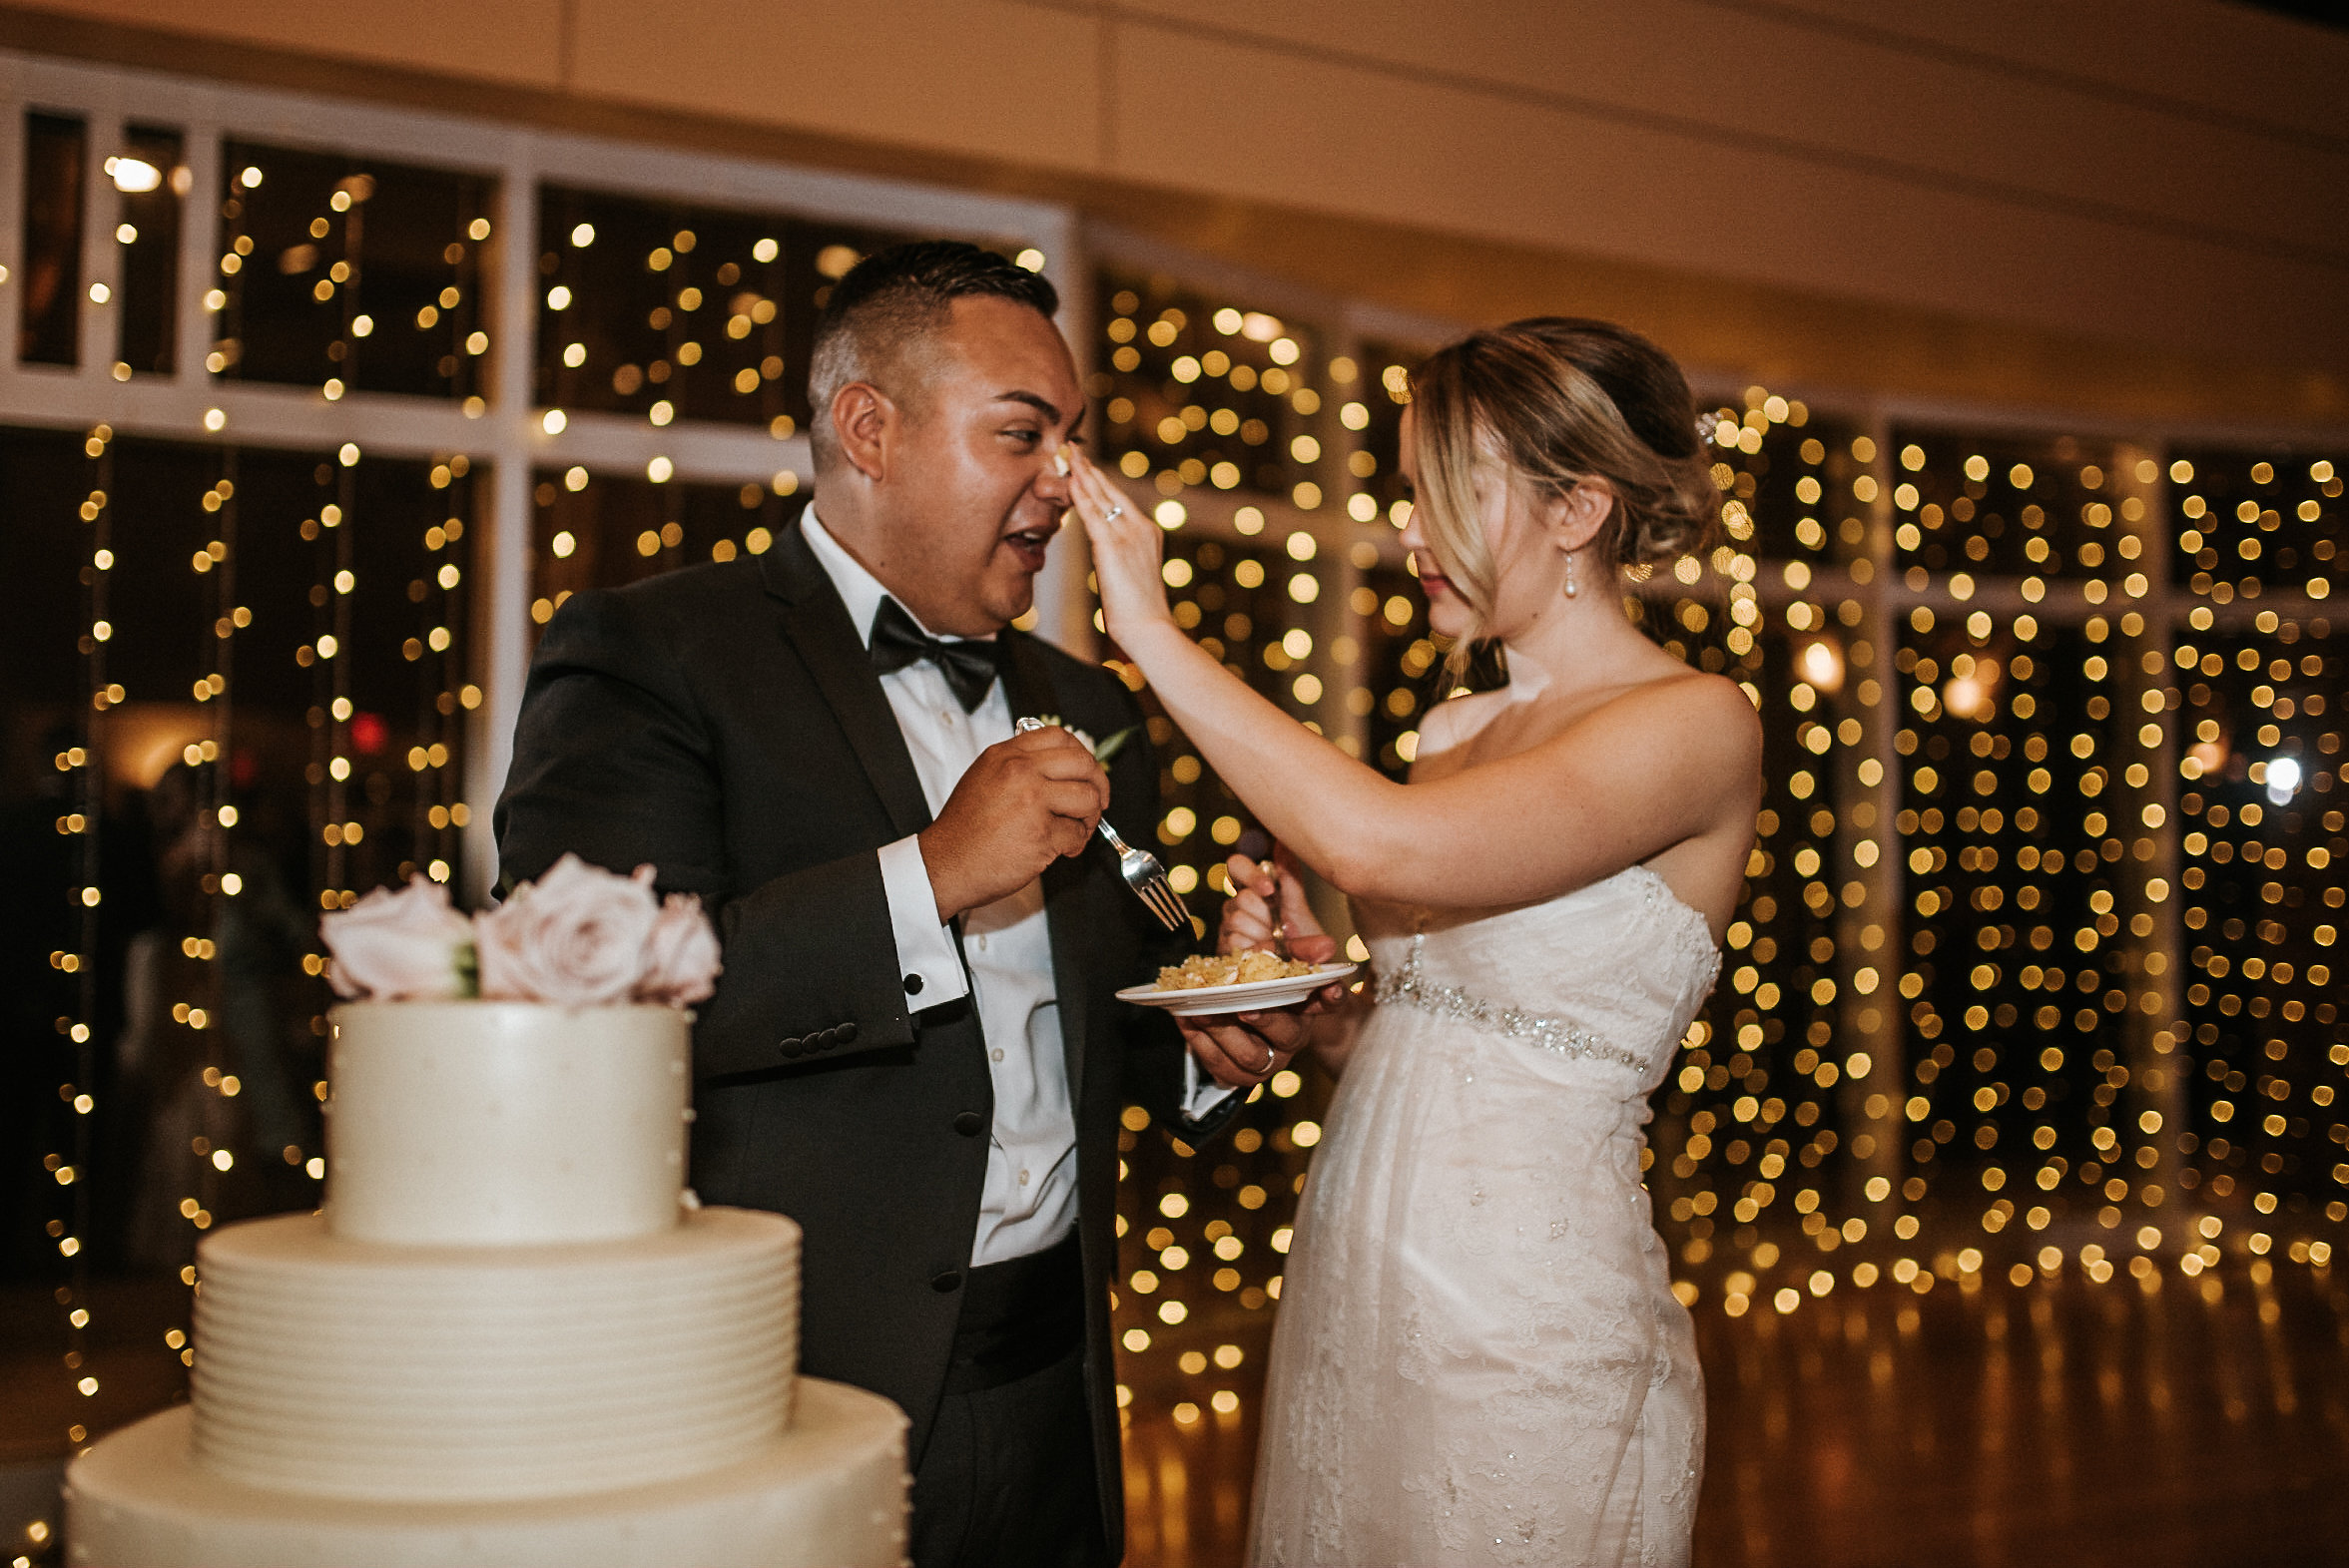 Bride putting cake on groom's nose